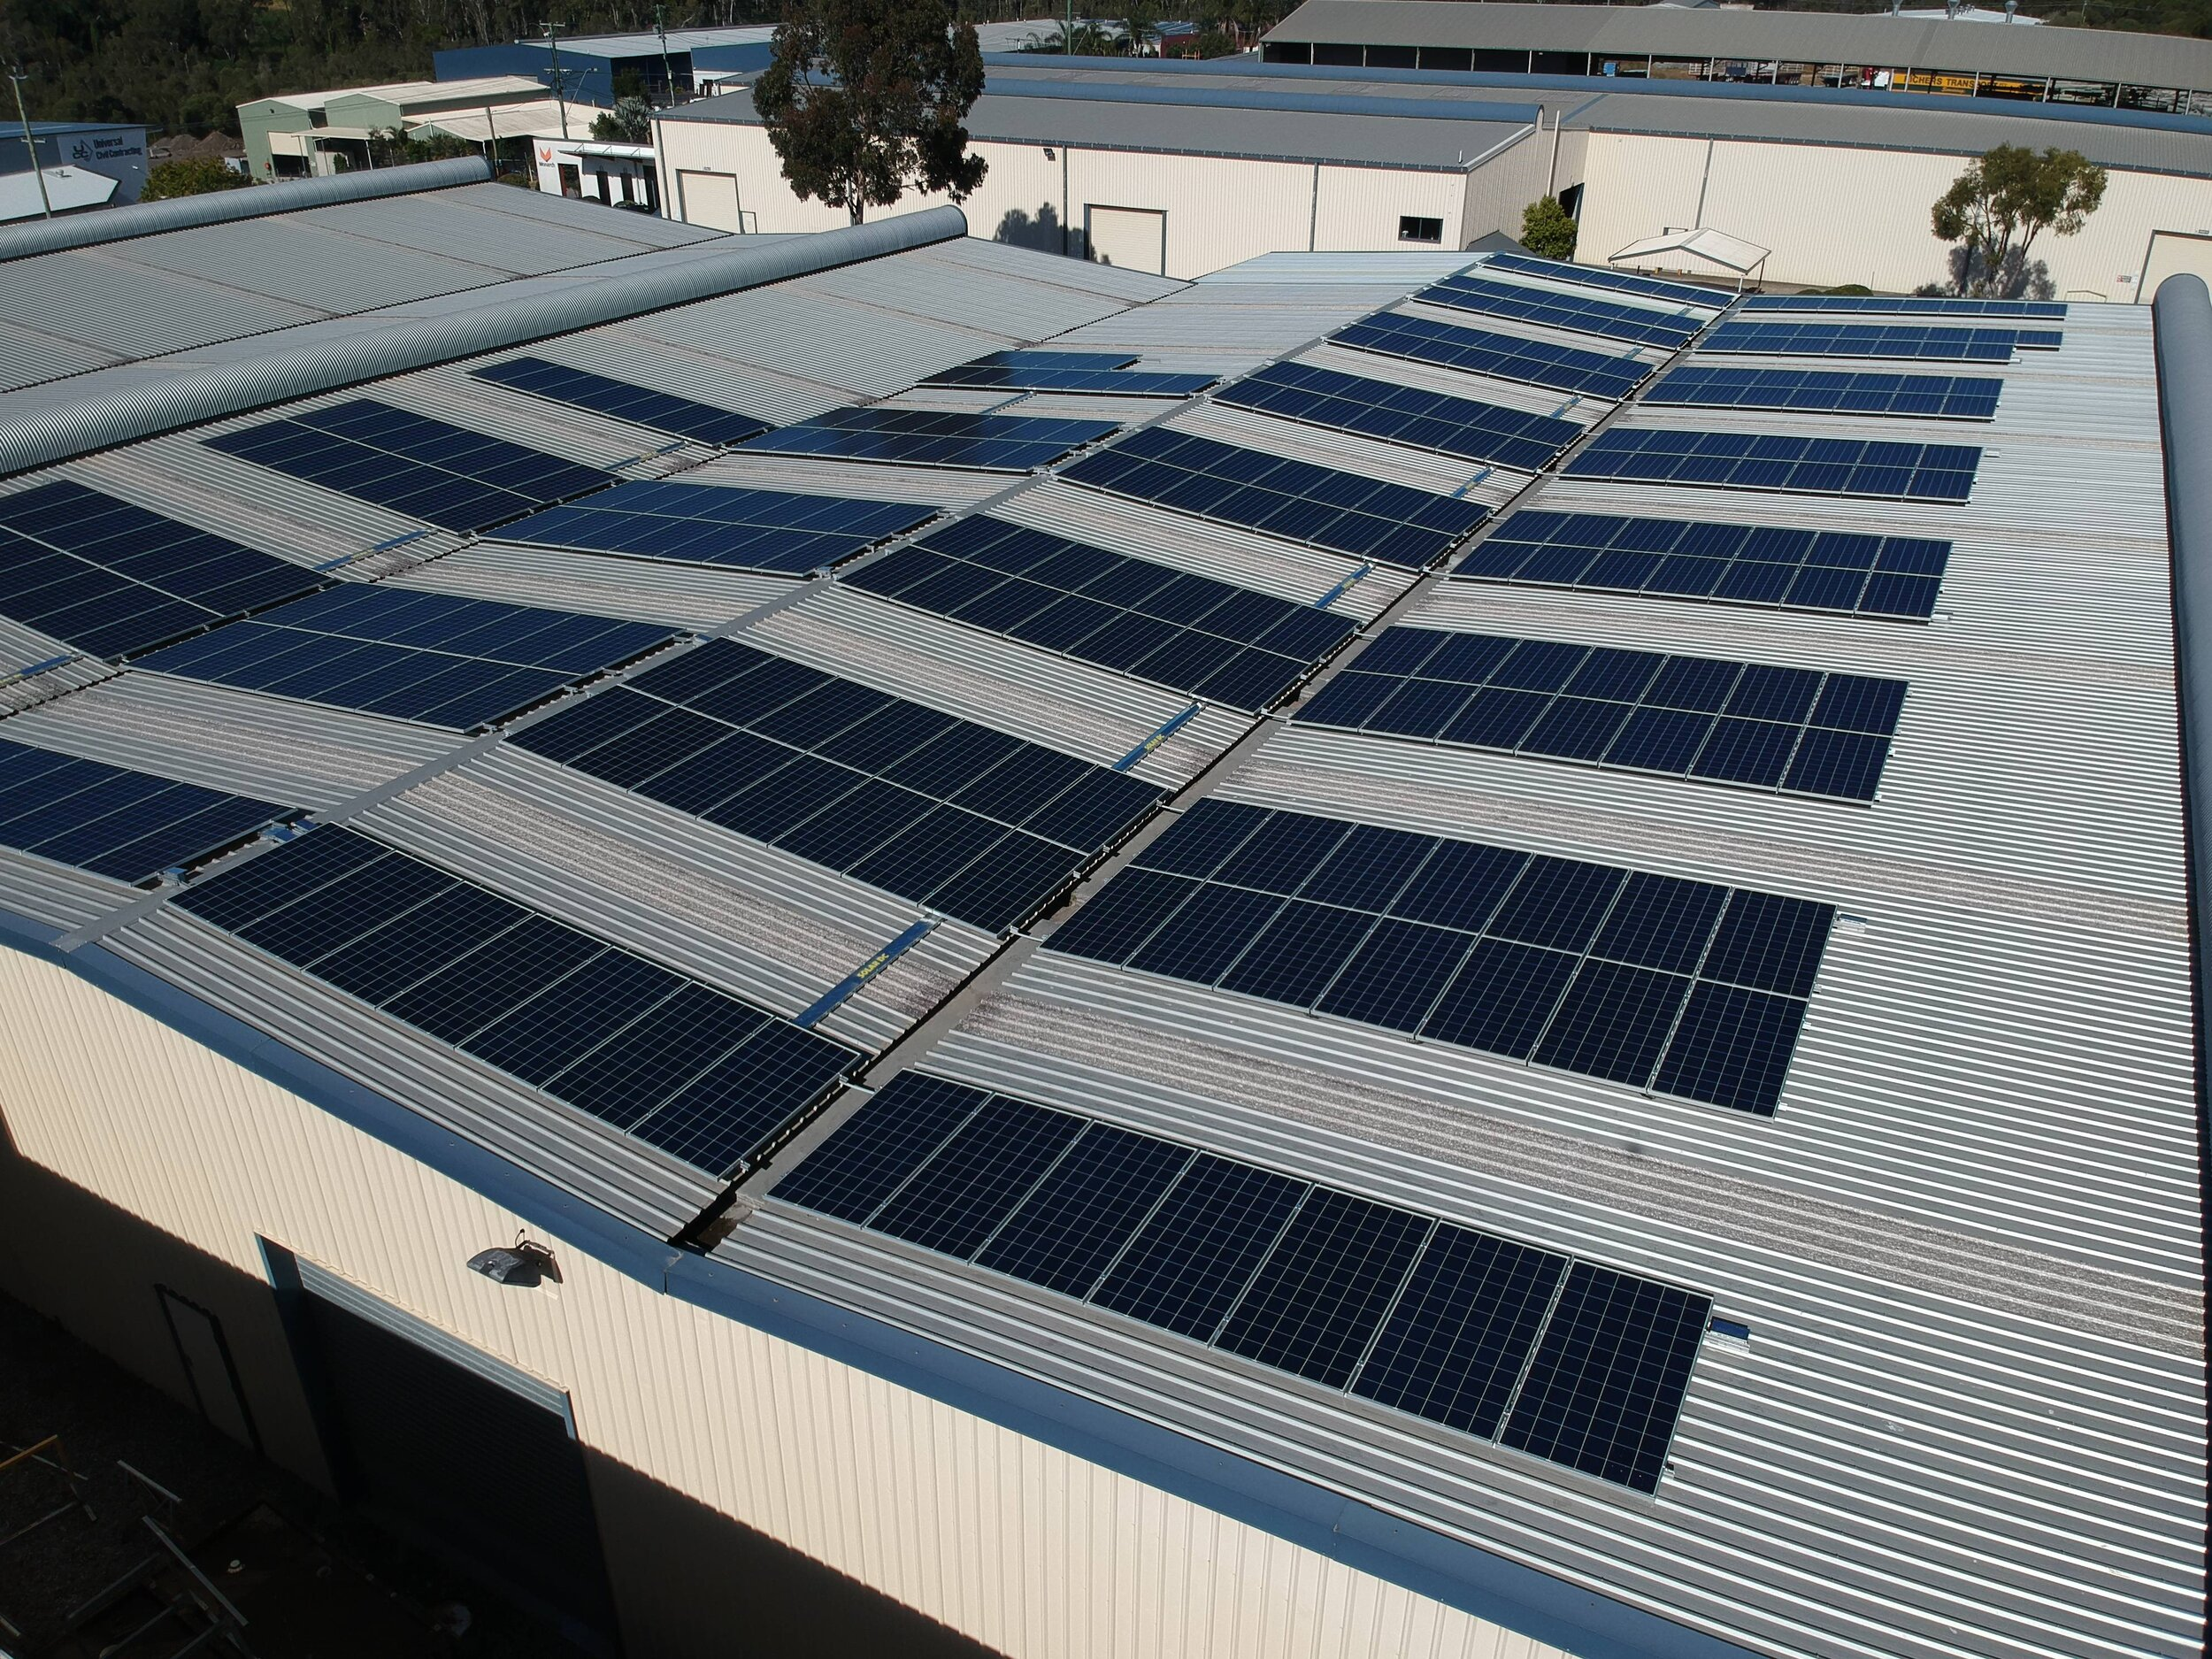 A 100kW solar system on an industrial shed that received nearly $60,000 in incentives under the Federal incentive scheme.